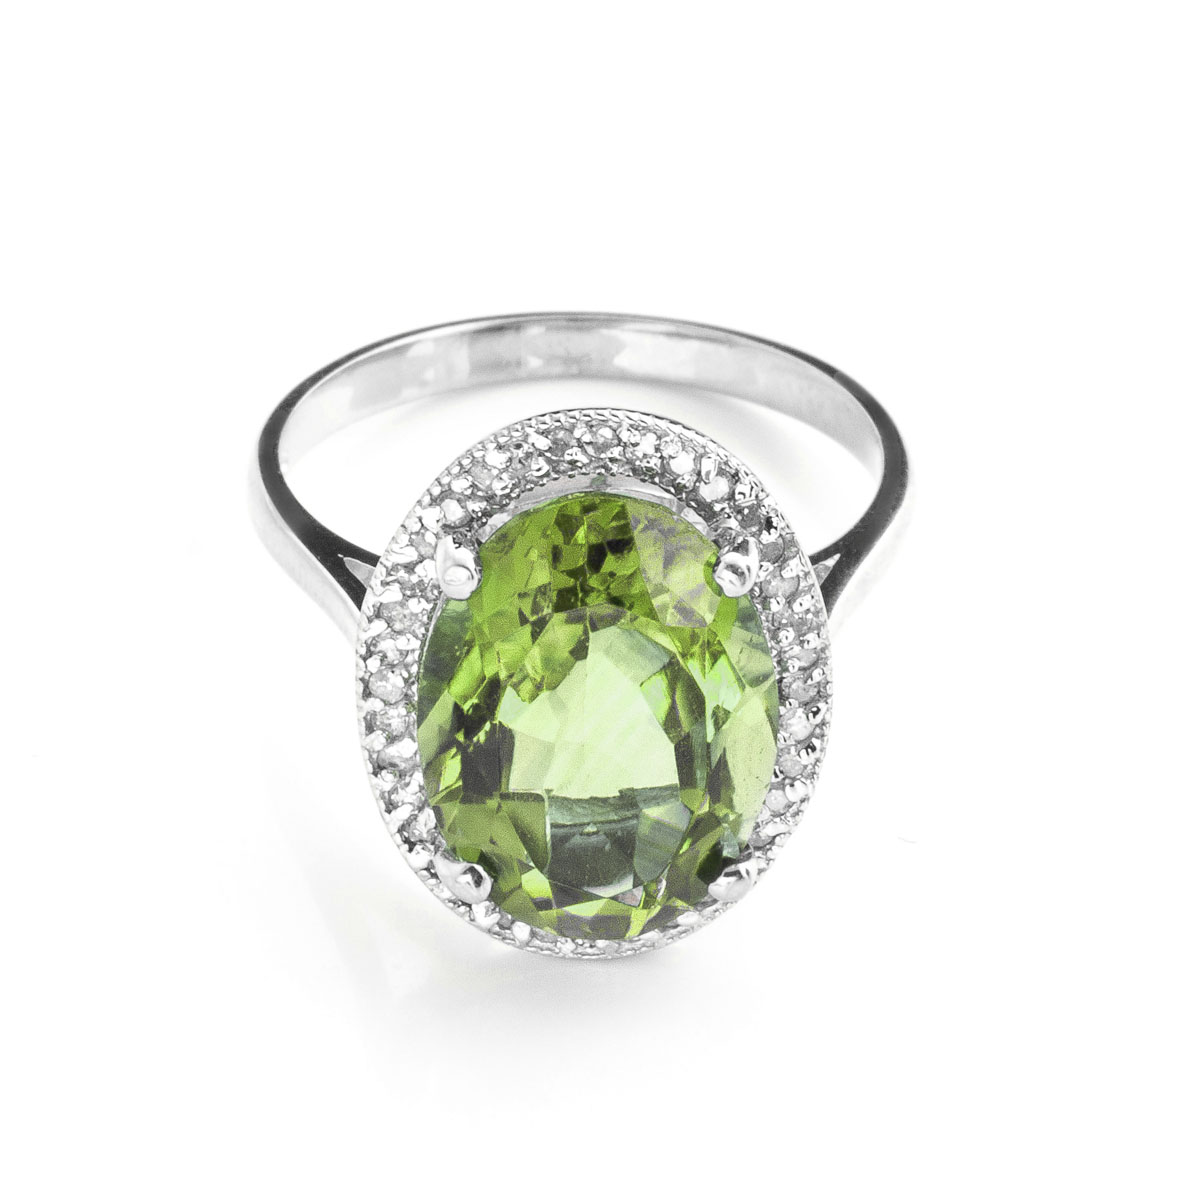 Green Amethyst Halo Ring 5.28 ctw in 9ct White Gold